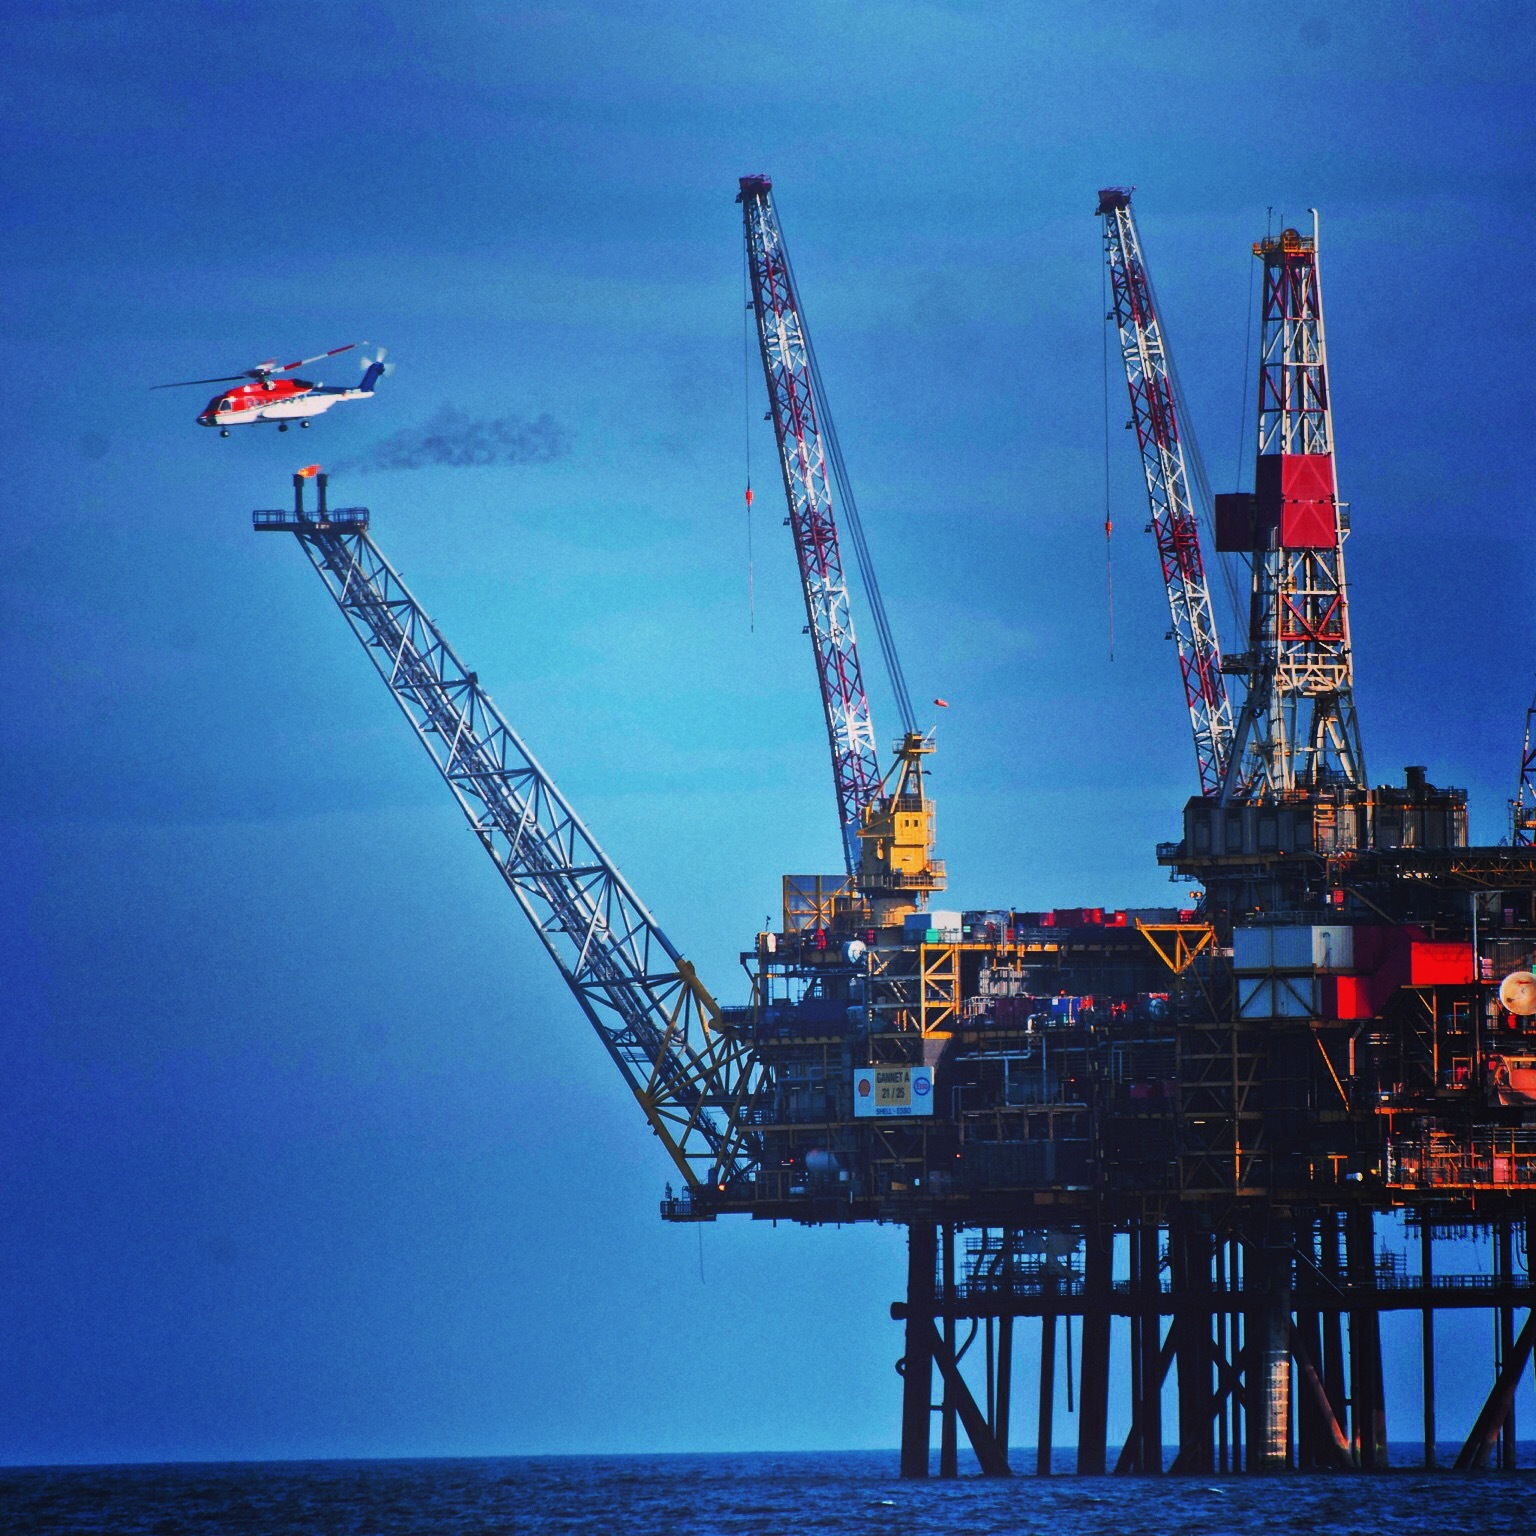 North Sea oil and gas industry